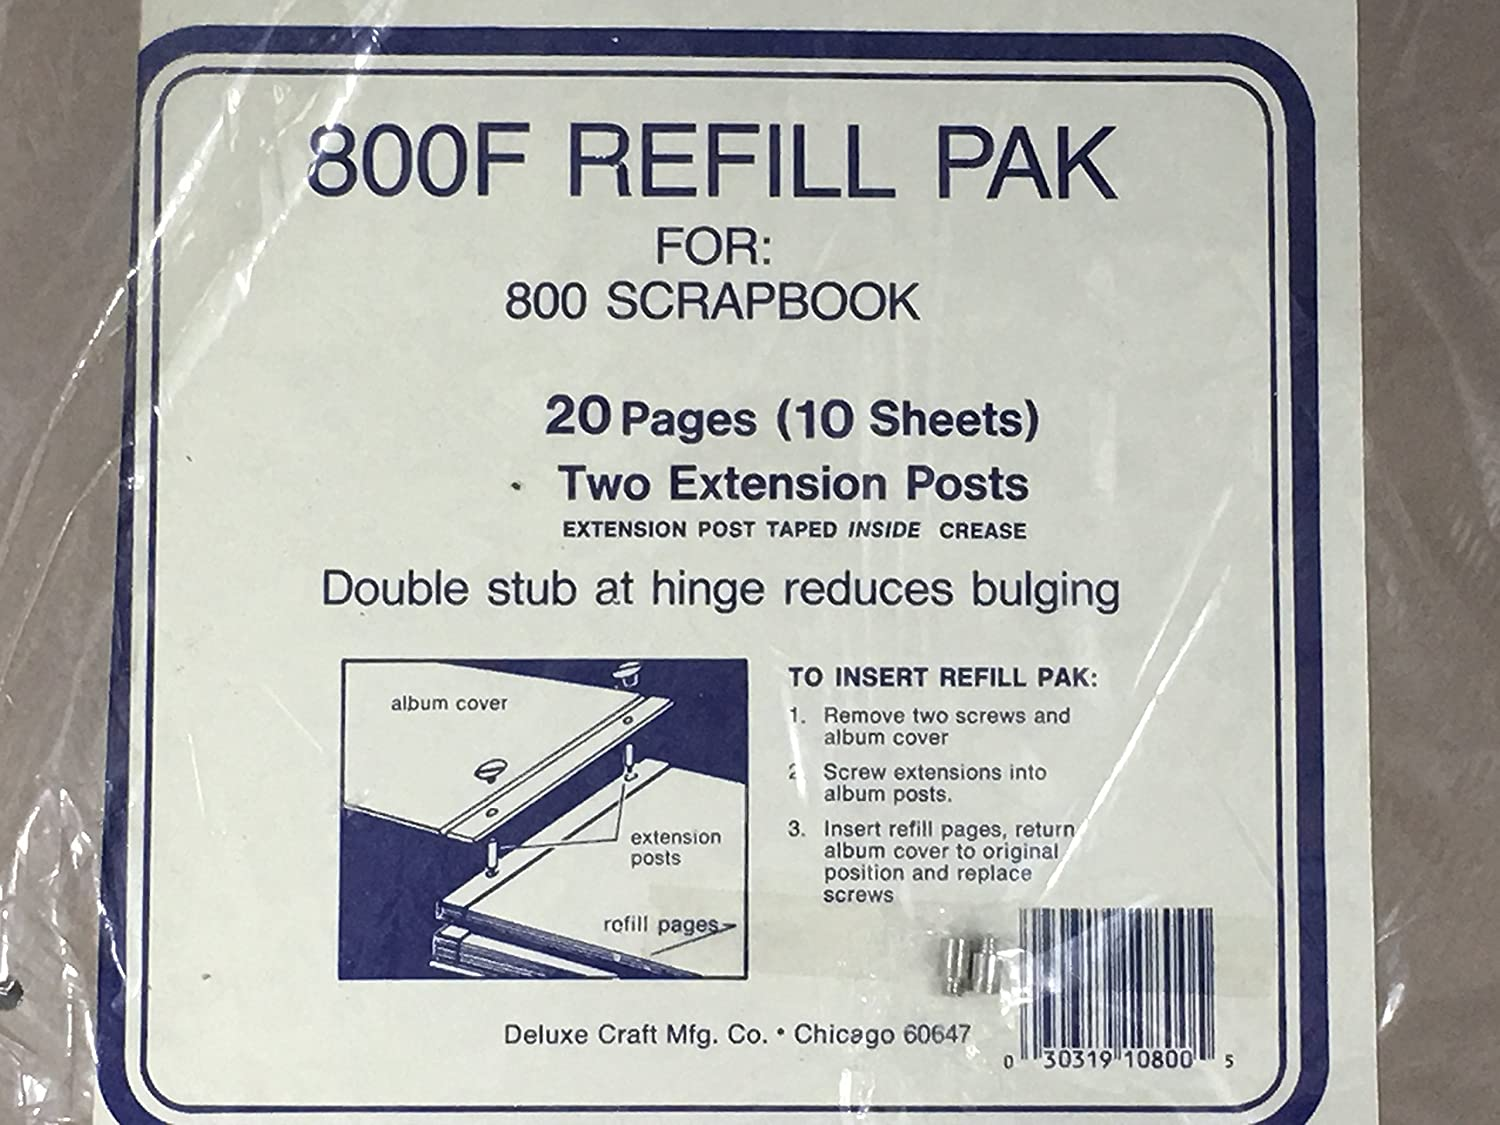 Two Extension Posts 800F Refill Pak for 800 Scrapbook 20 Pages 10 Sheets